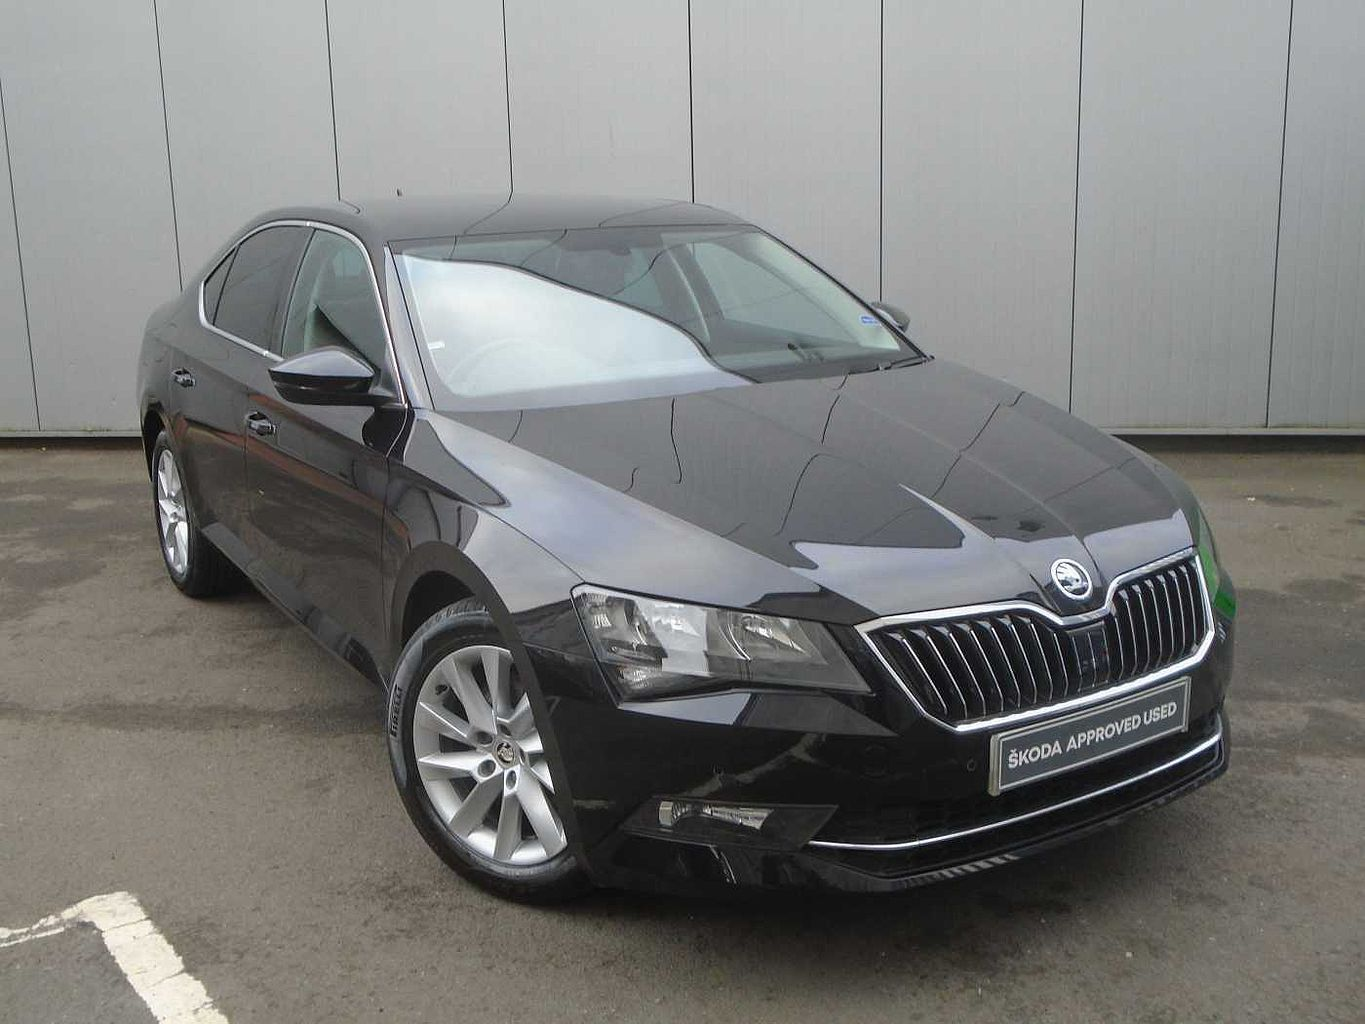 ŠKODA Superb 1.5 TSI (150ps) SE Technology ACT Hatchback